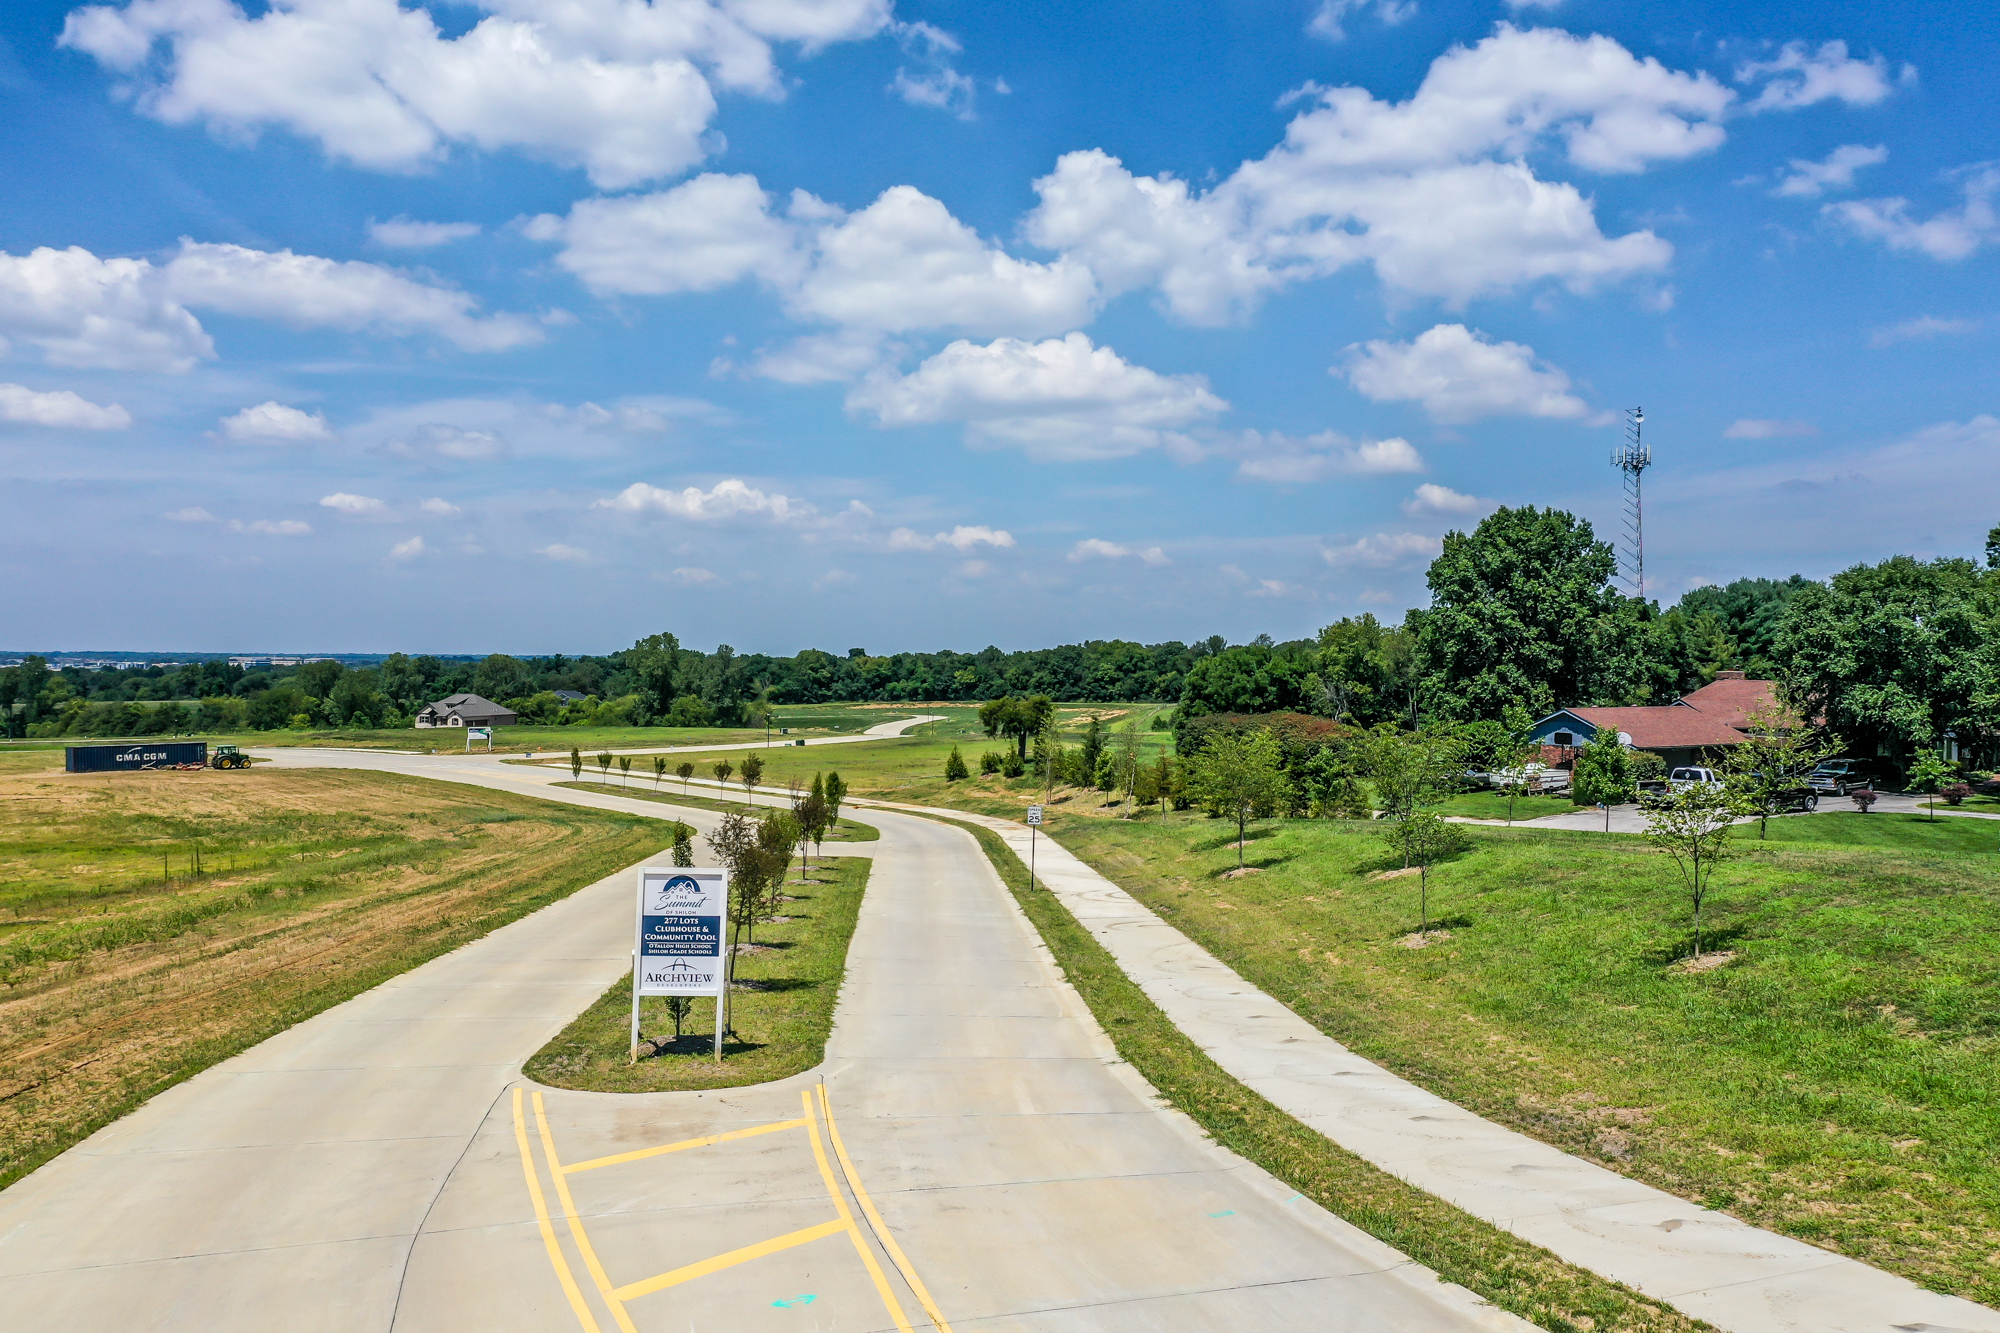 New_Construction_Homes_For_Sale_Shiloh_Illinois_Near_Scott_AFB-1.jpg